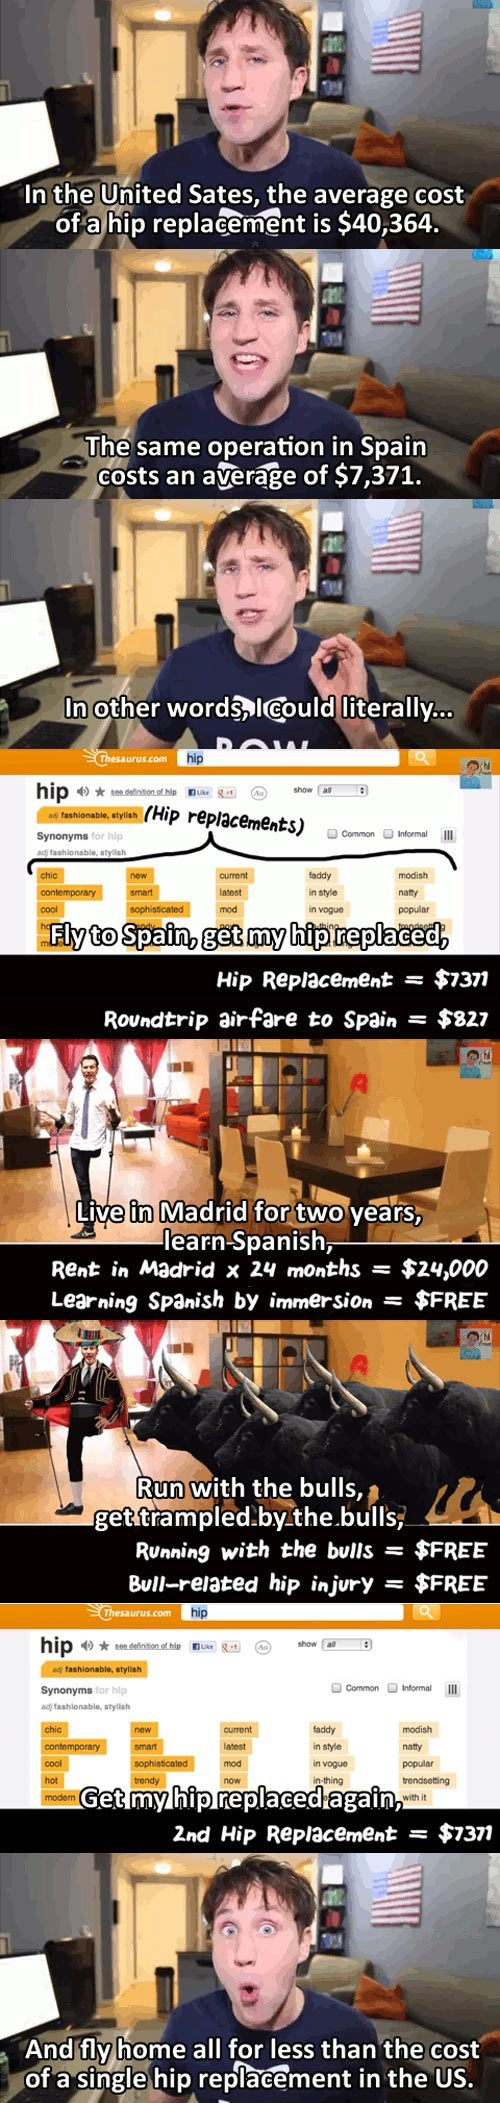 hip replacement,insurance,medicine,Spain,america